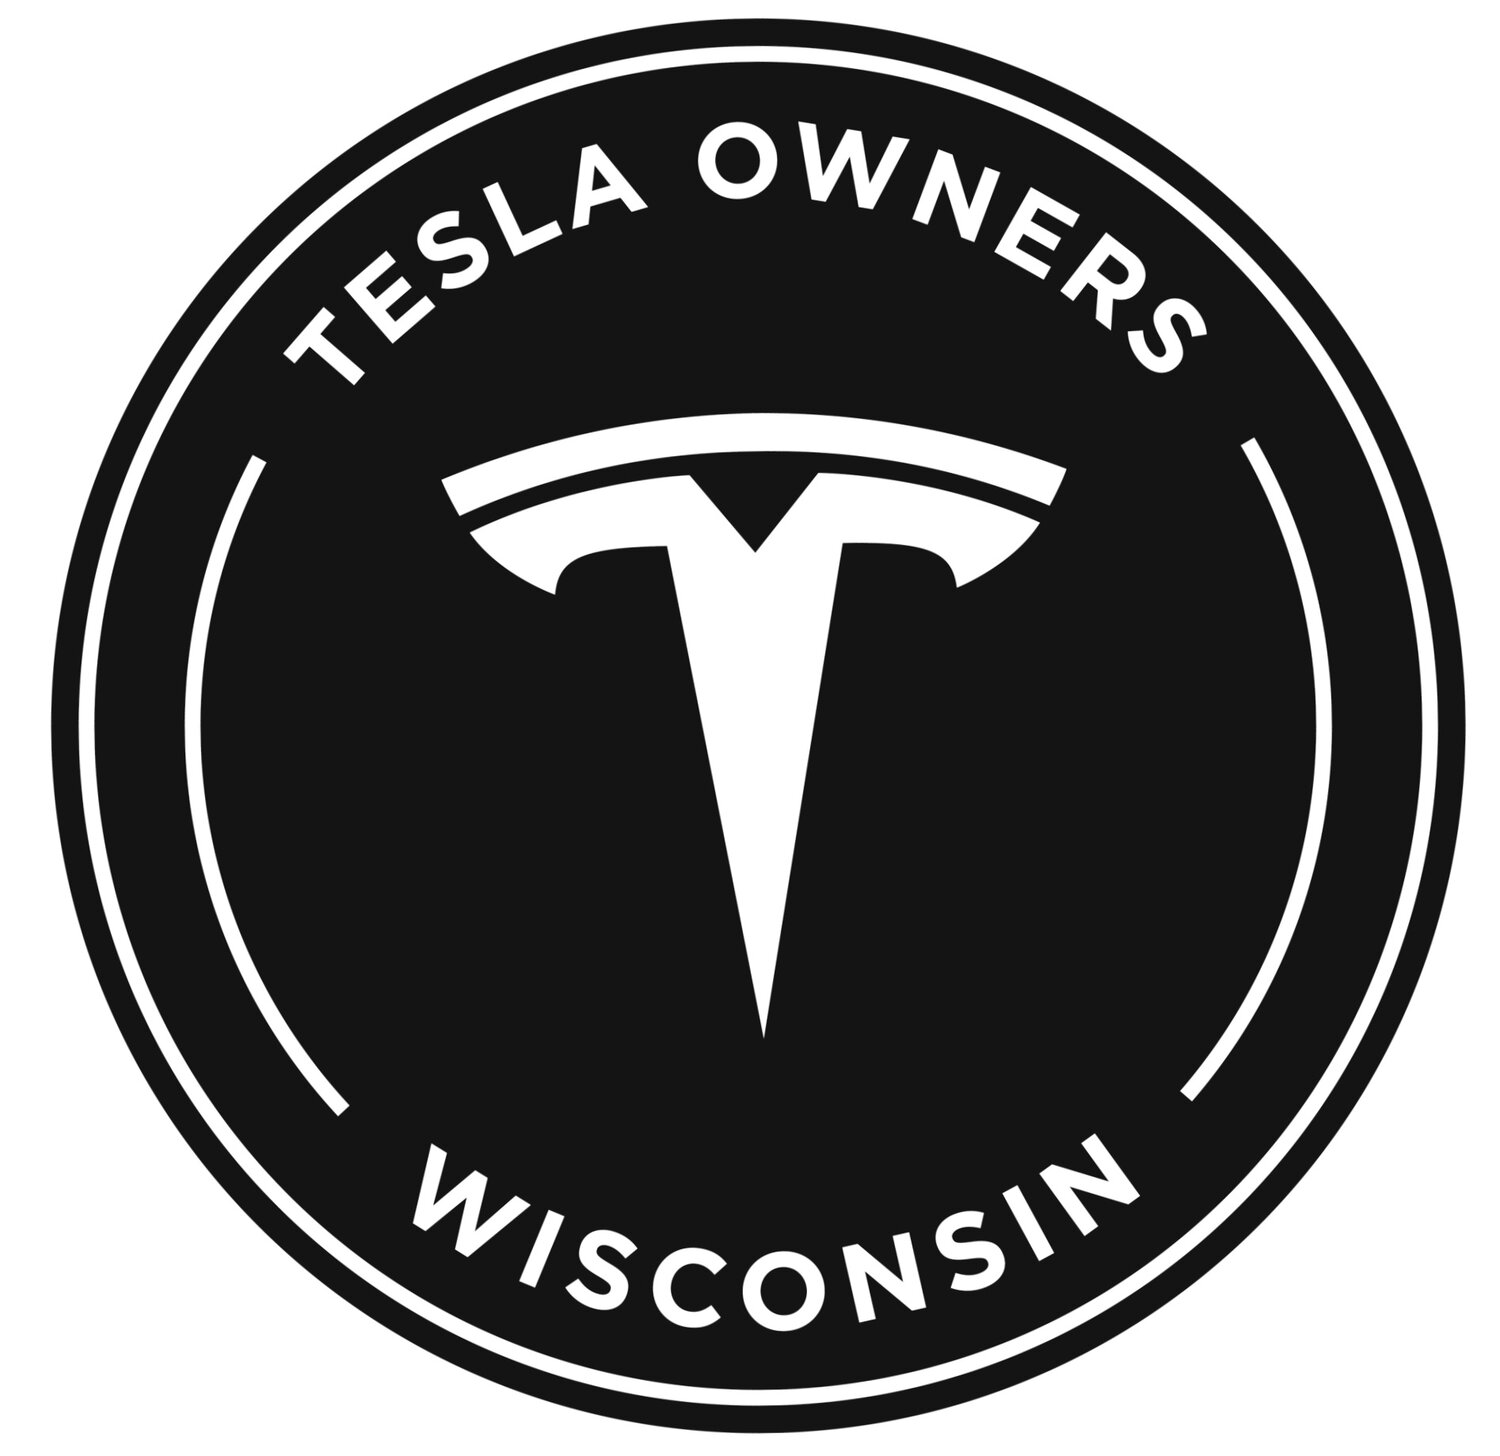 Wisconsin Tesla Club